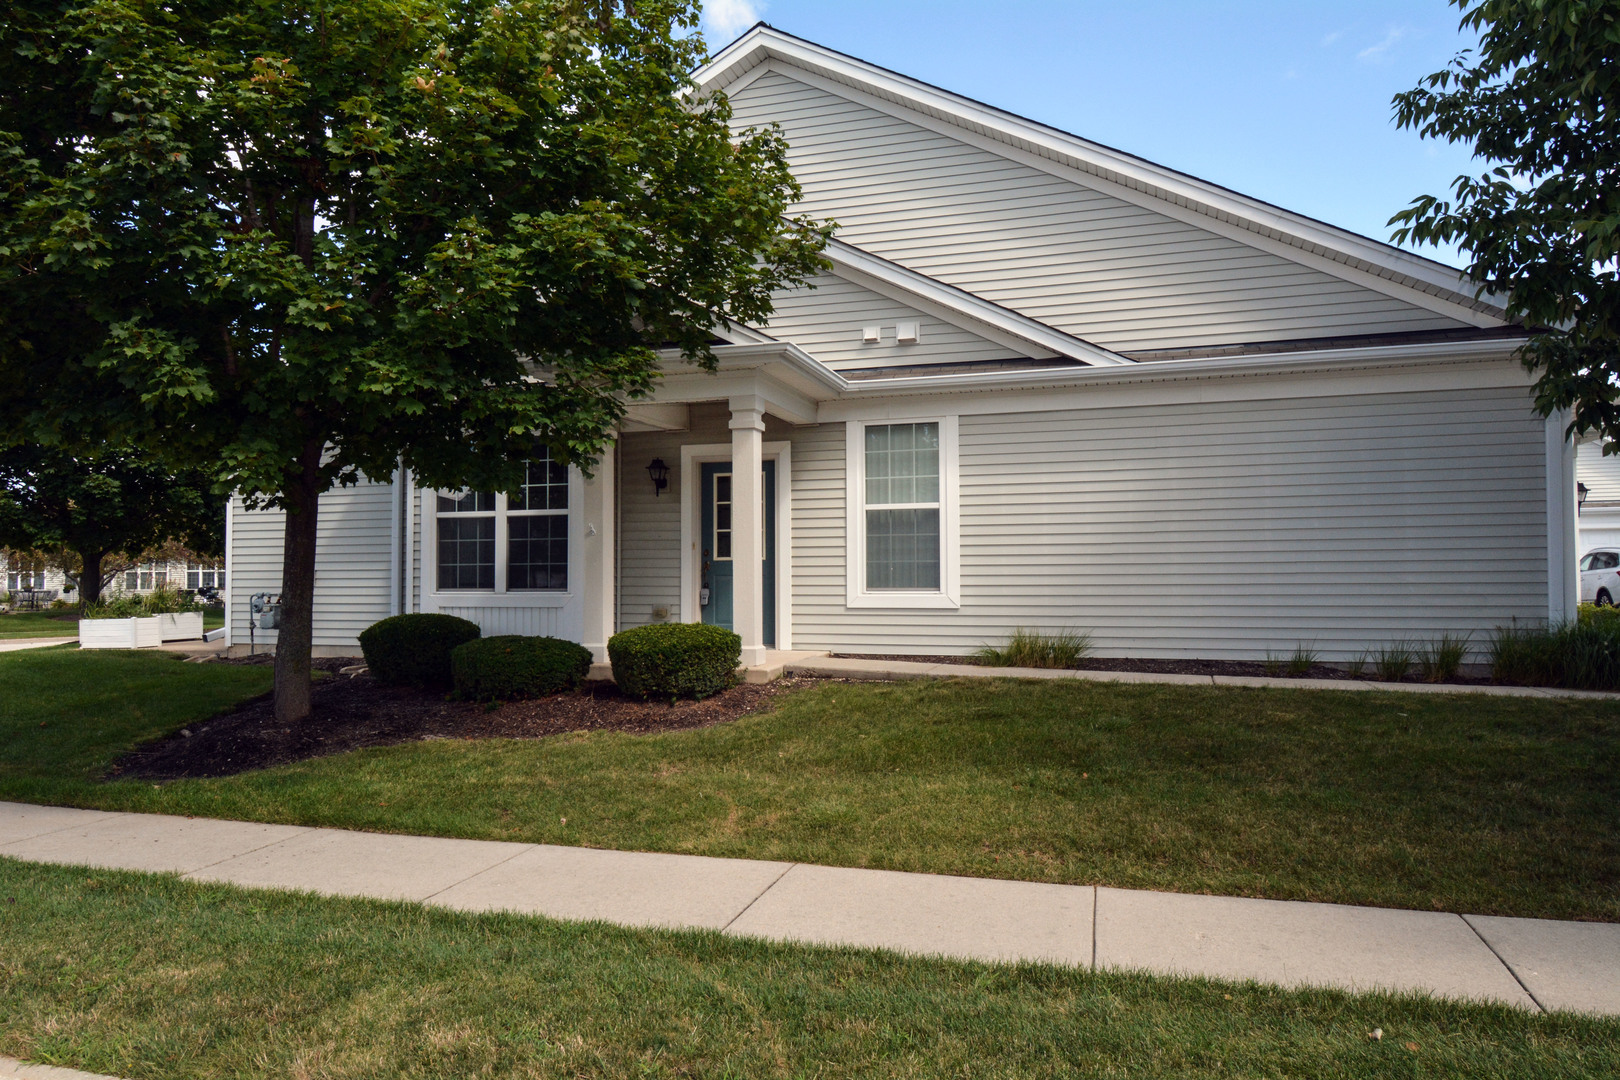 Photo for 13552 Nealy Road, Huntley, IL 60142 (MLS # 10486845)